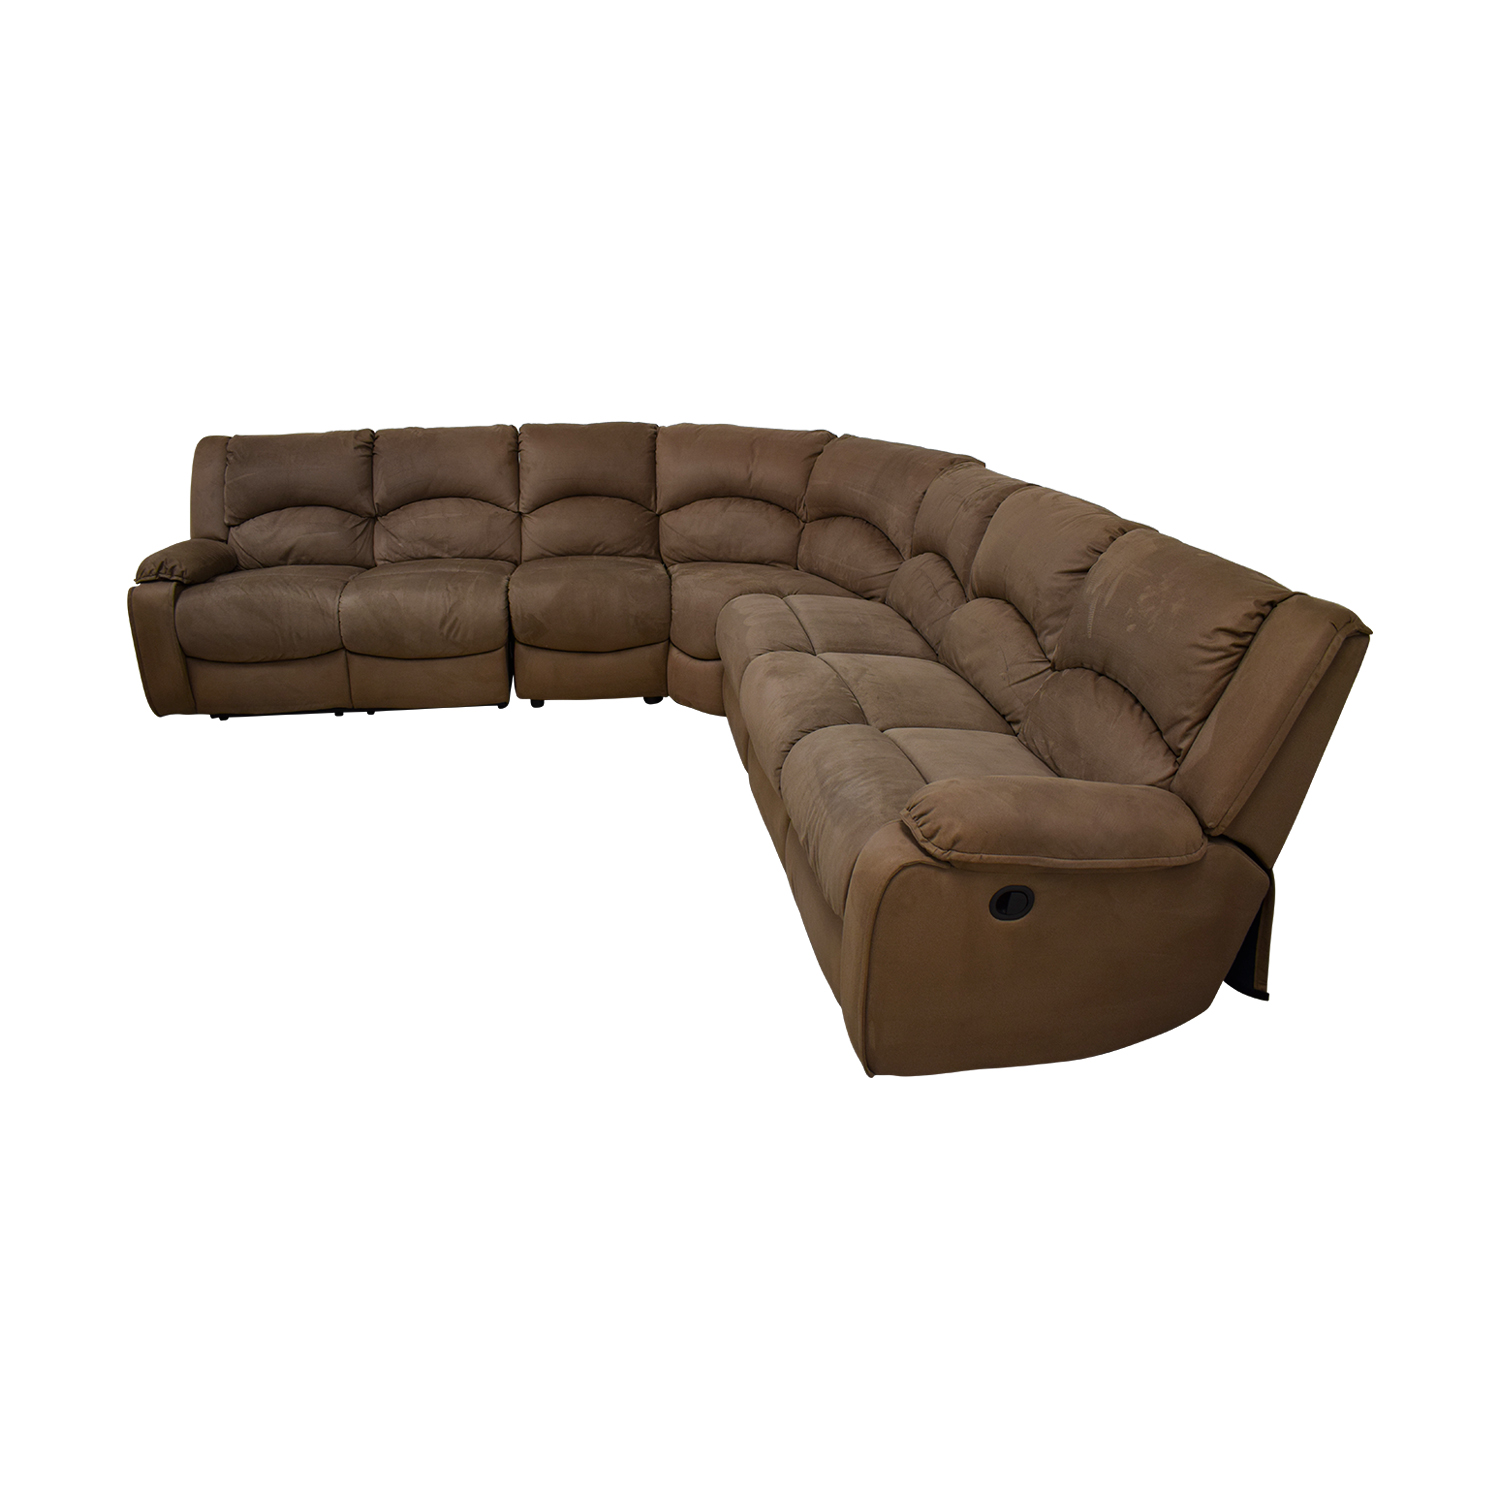 Raymour & Flanigan Raymour & Flanigan Mocha Microfiber L-Shaped Sectional Sectionals